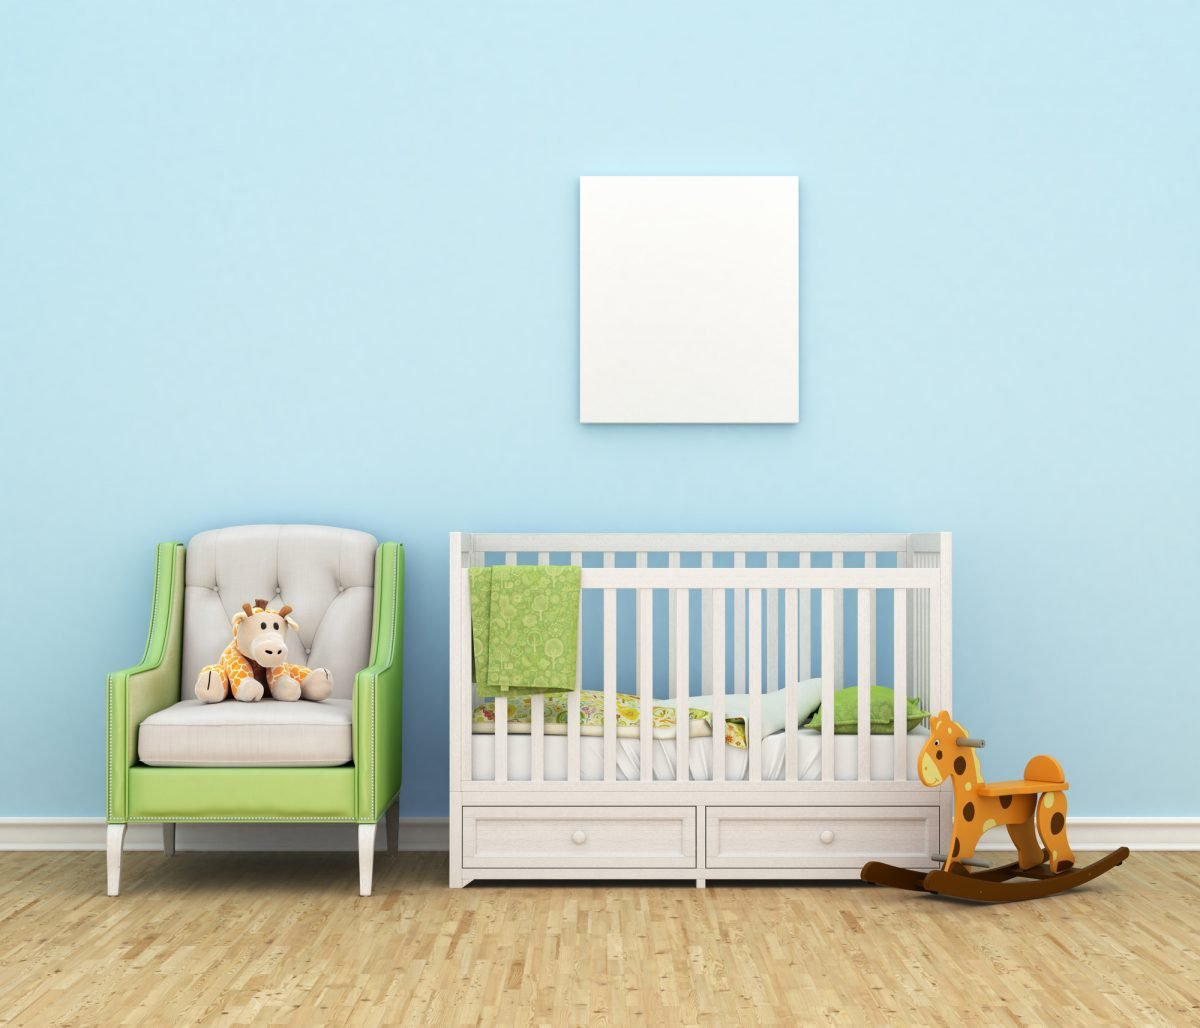 Top 5 Best Nursery Paint Colors Your Baby Will Love